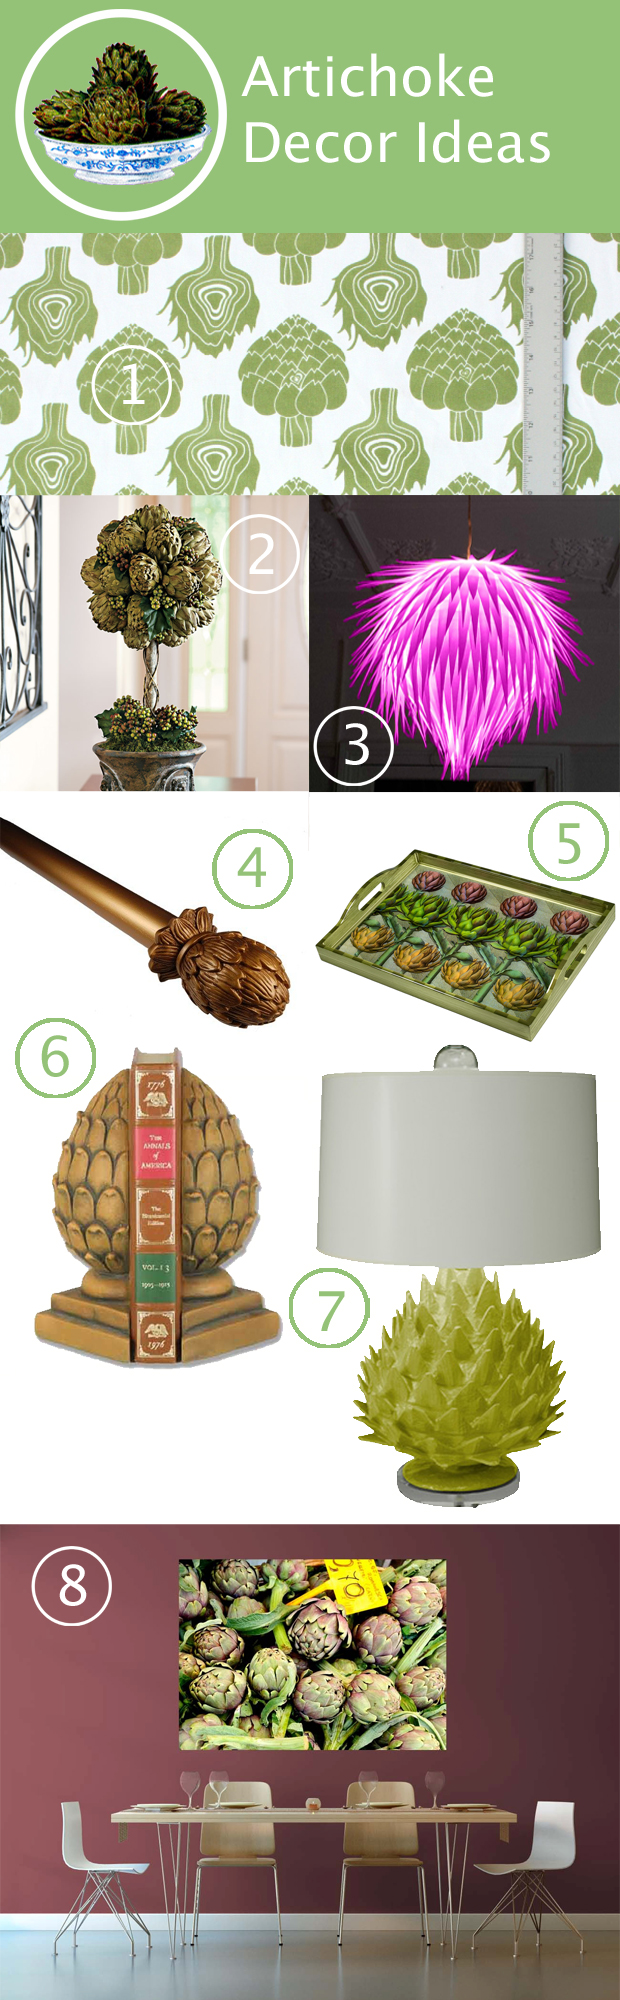 Artichoke Decor Ideas at HandsOccupied.com